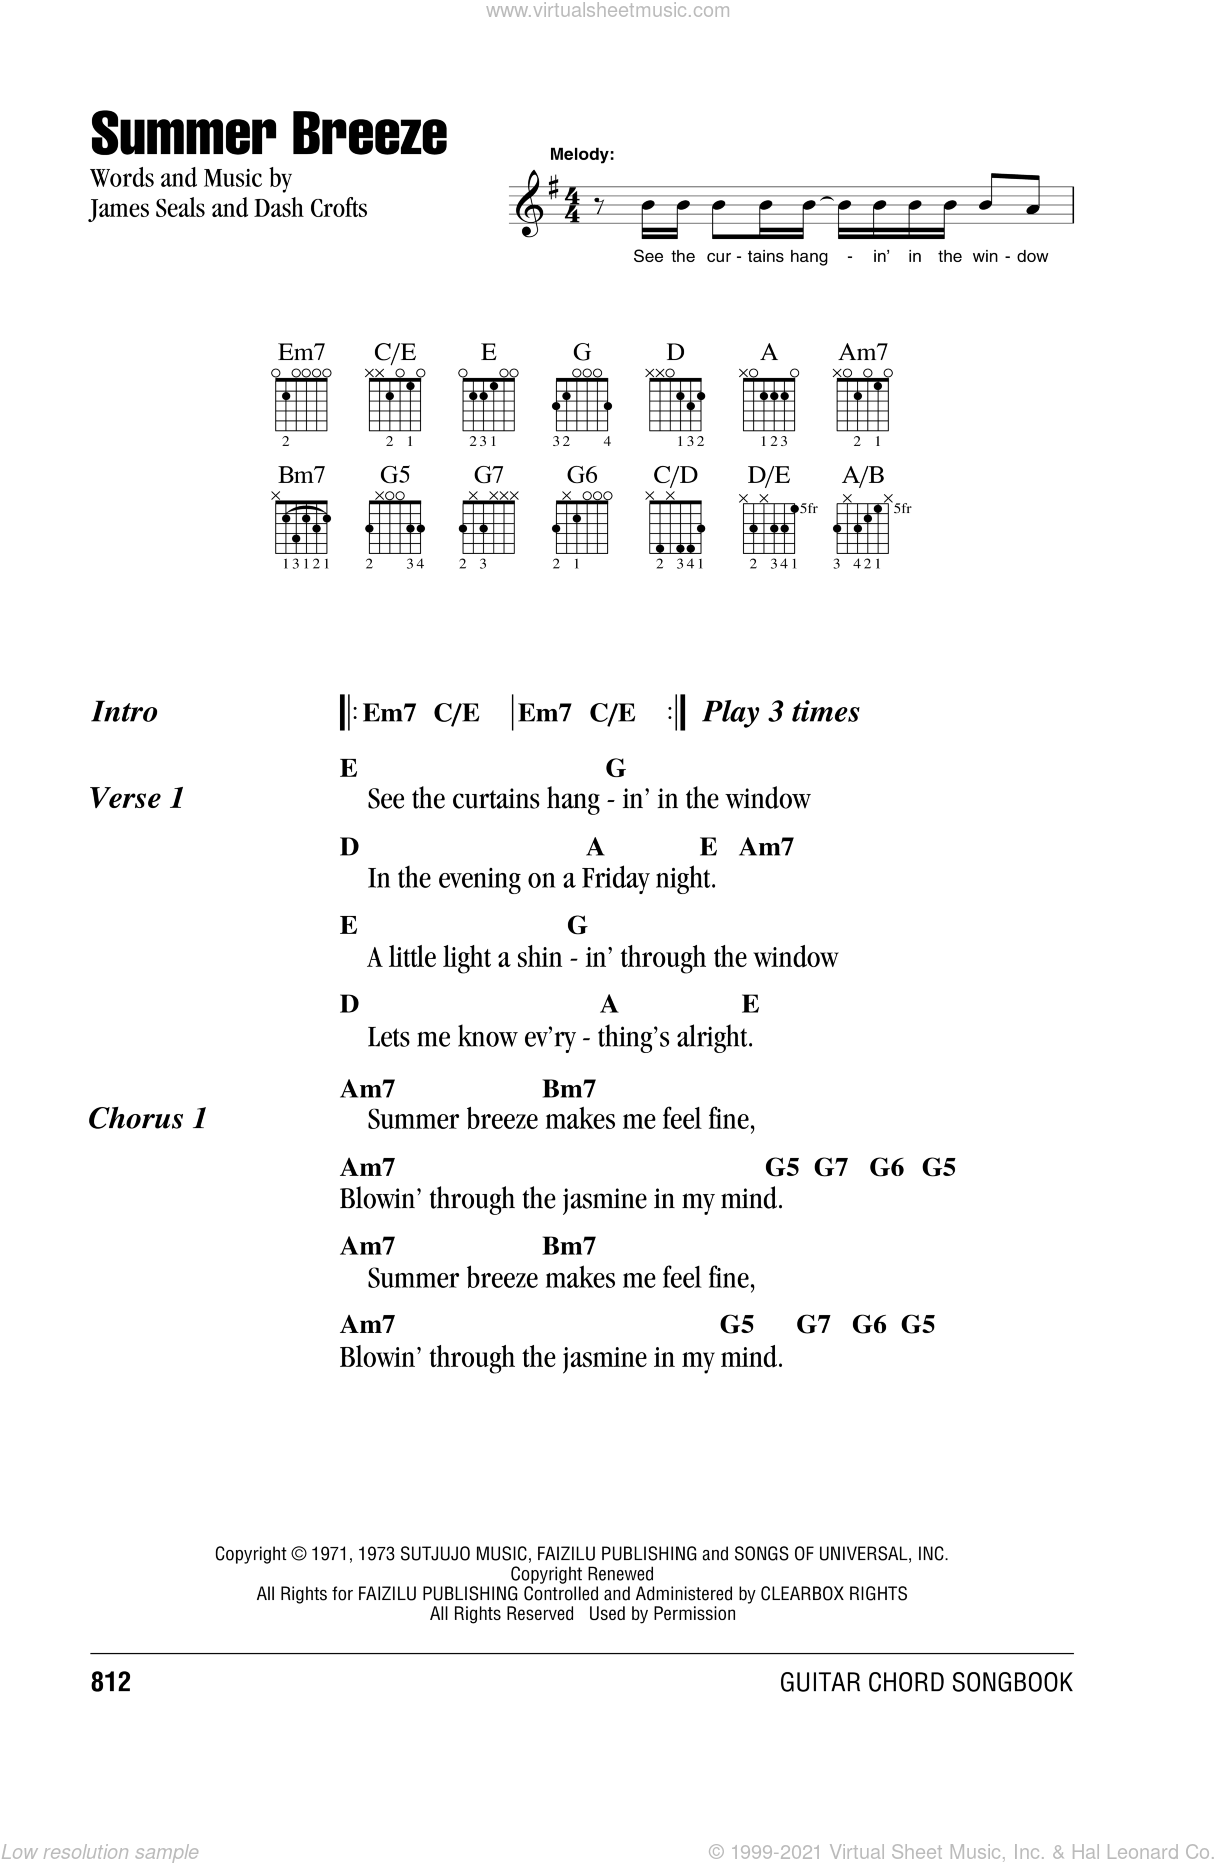 Summer Breeze sheet music for guitar (chords) by Seals & Crofts, Dash Crofts and James Seals, intermediate skill level